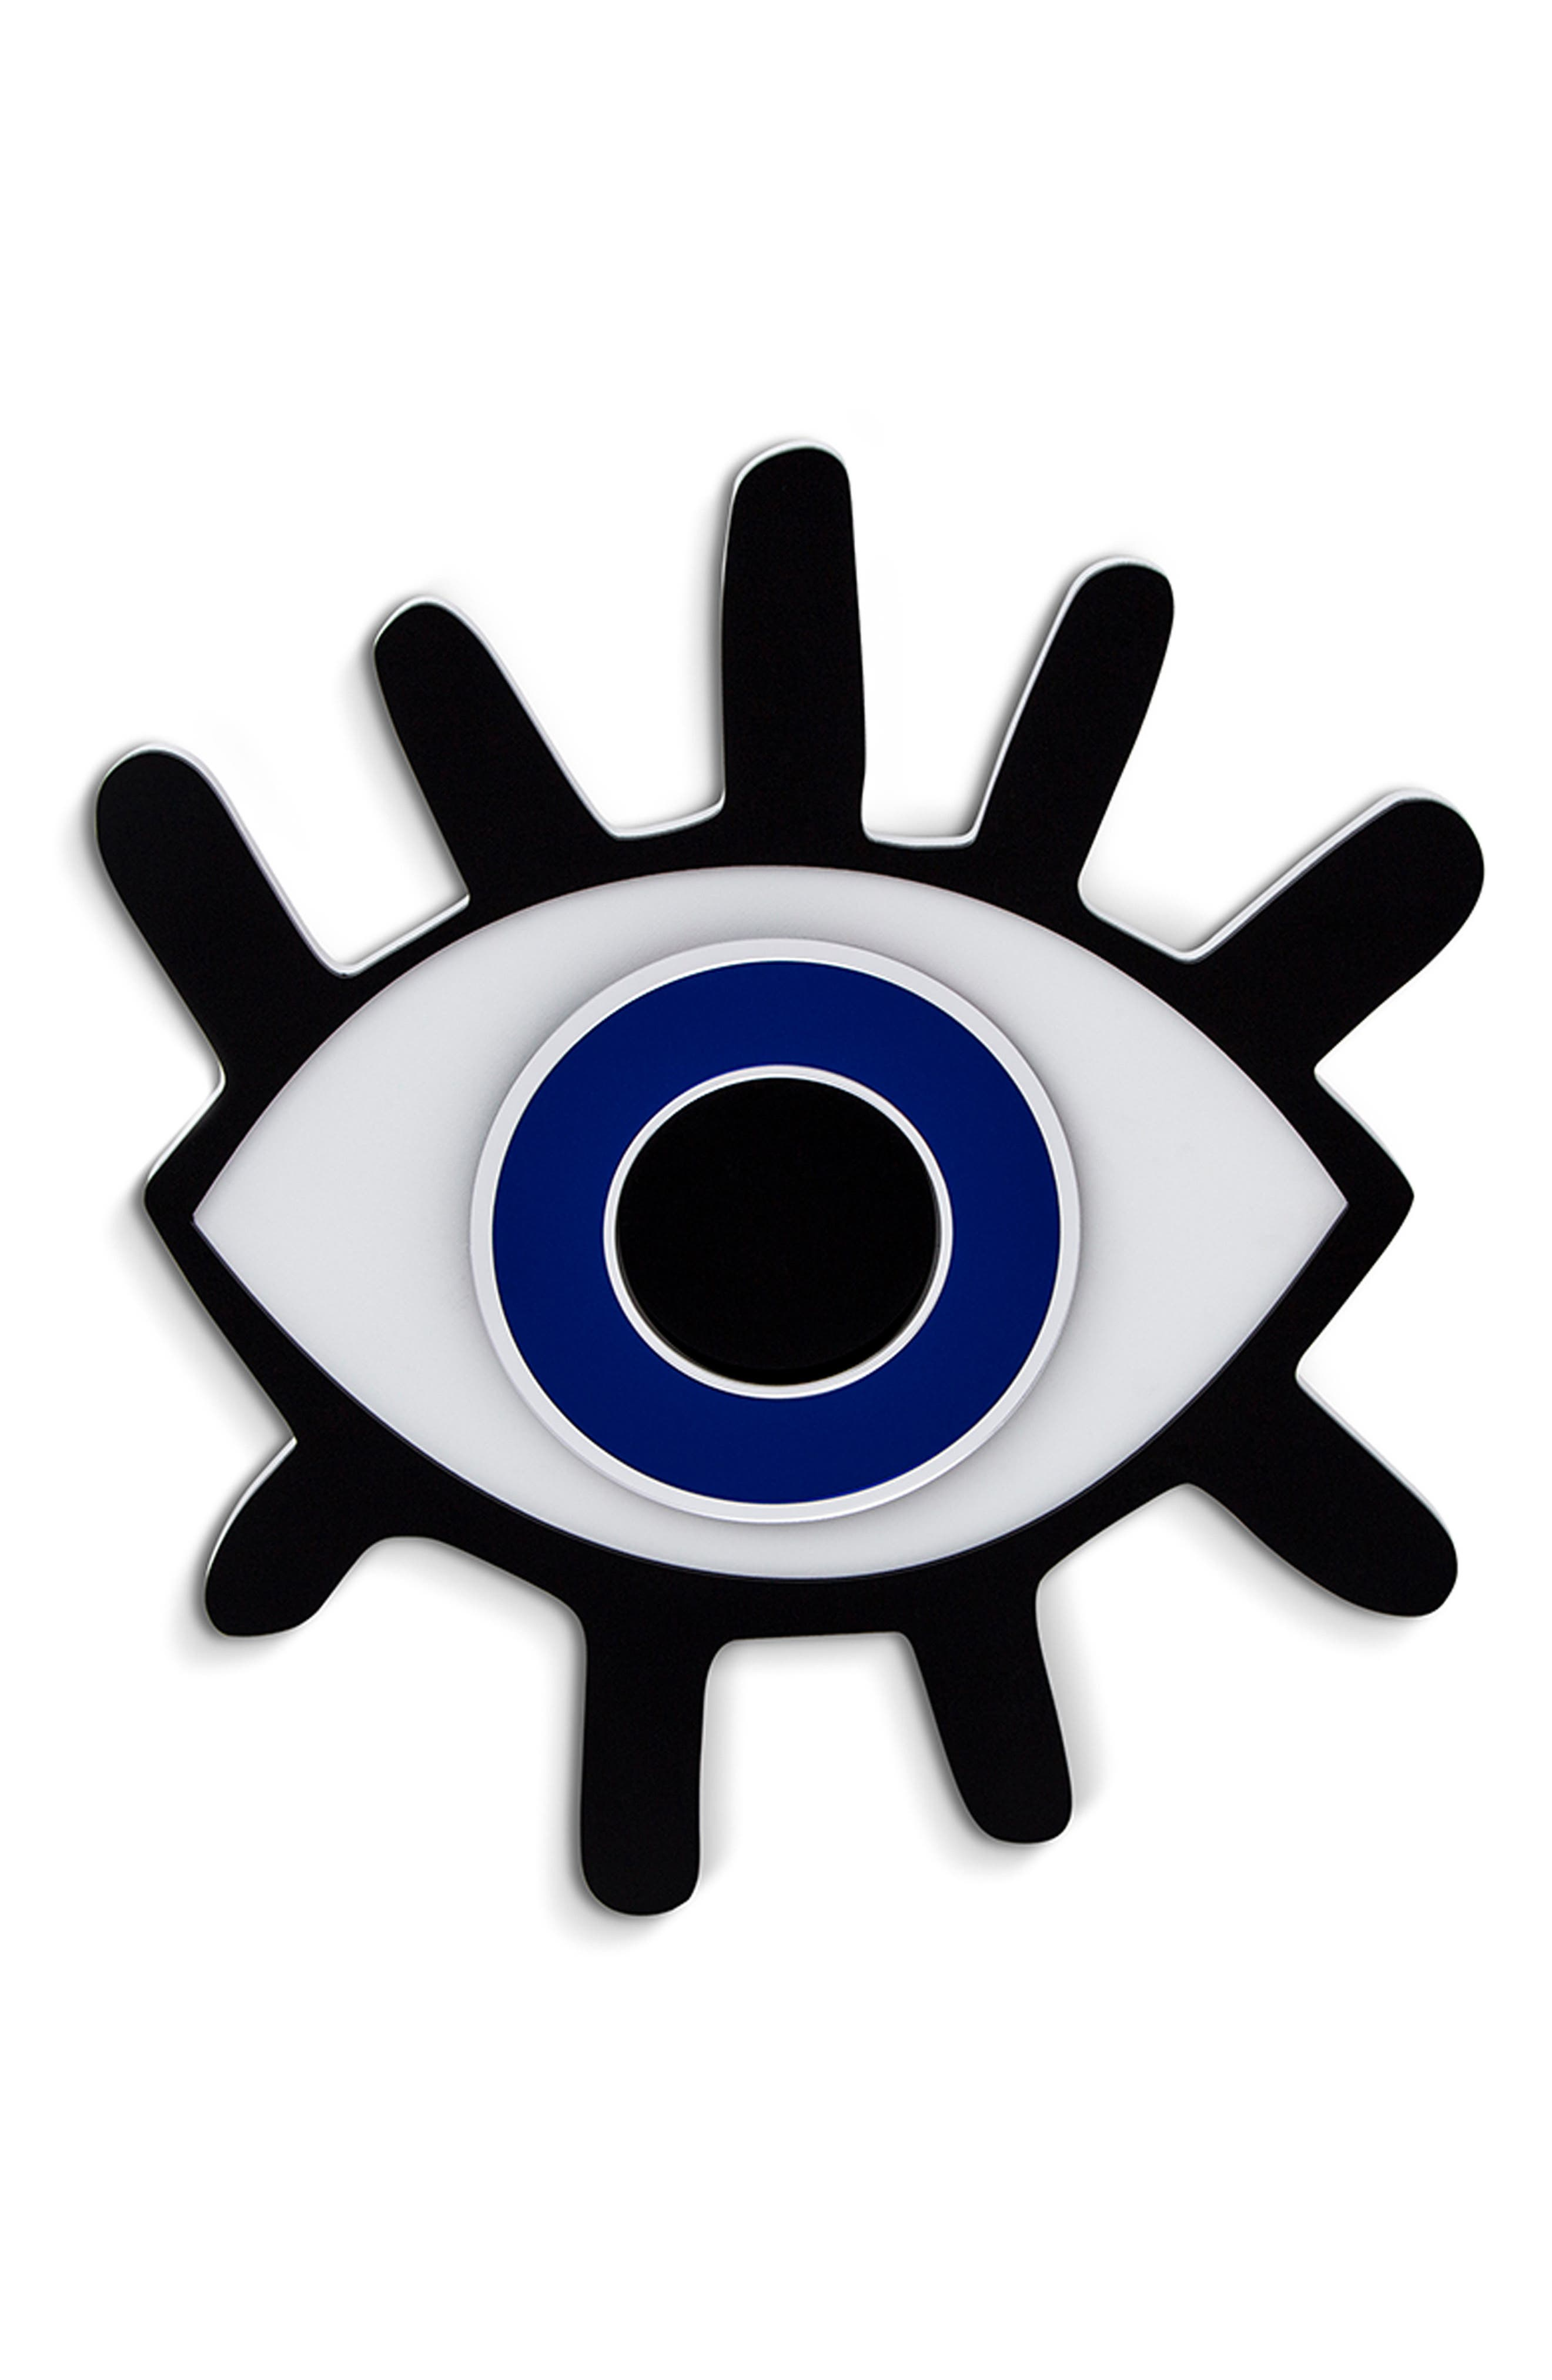 SECTIS DESIGN, Lashed Evil Eye Wall Art, Main thumbnail 1, color, BLUE BLACK AND WHITE